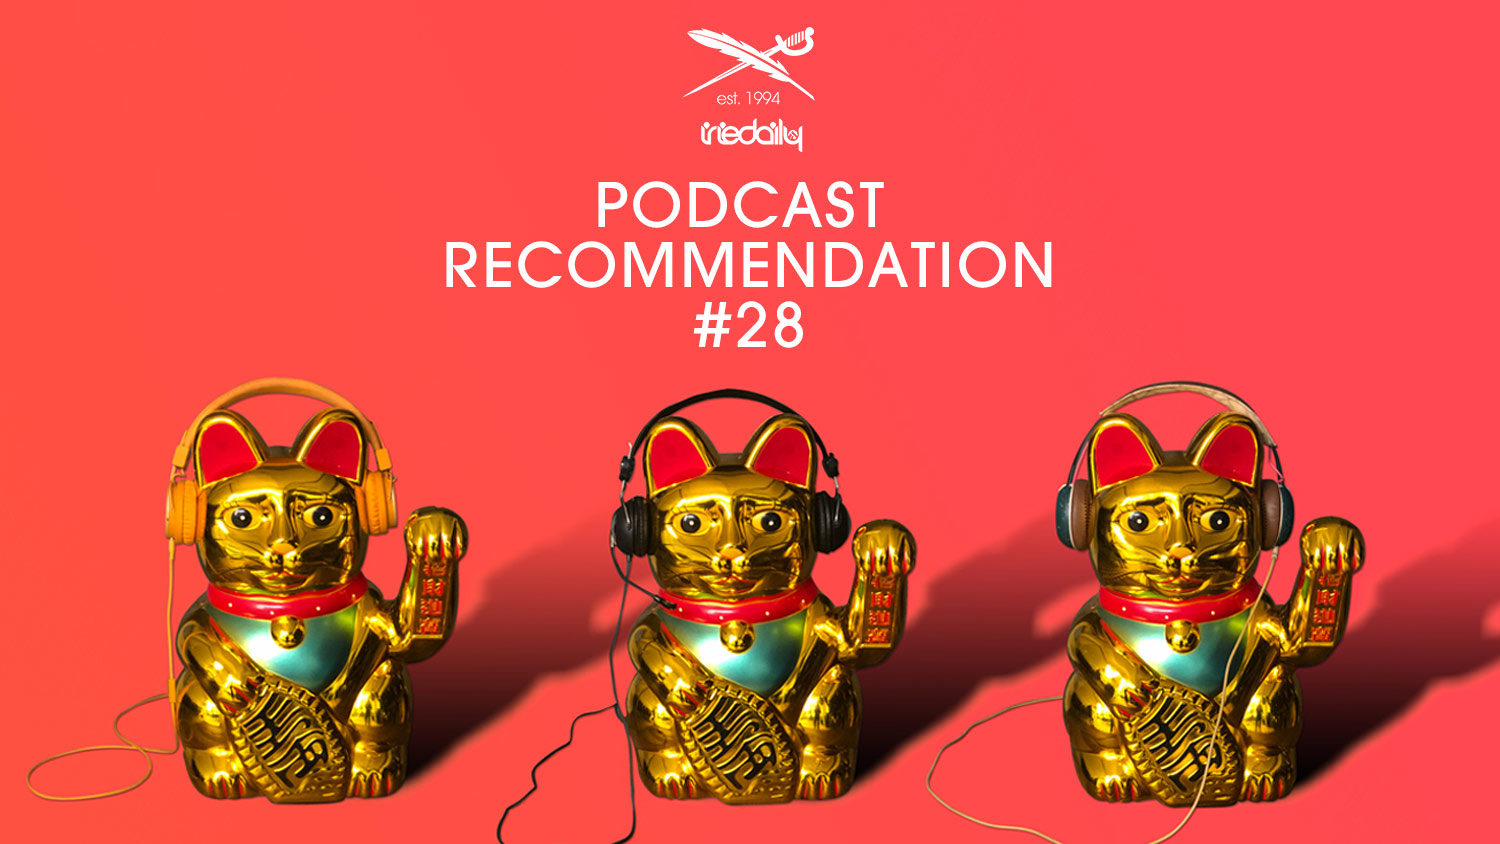 IRIEDAILY Podcast Recommendation #28